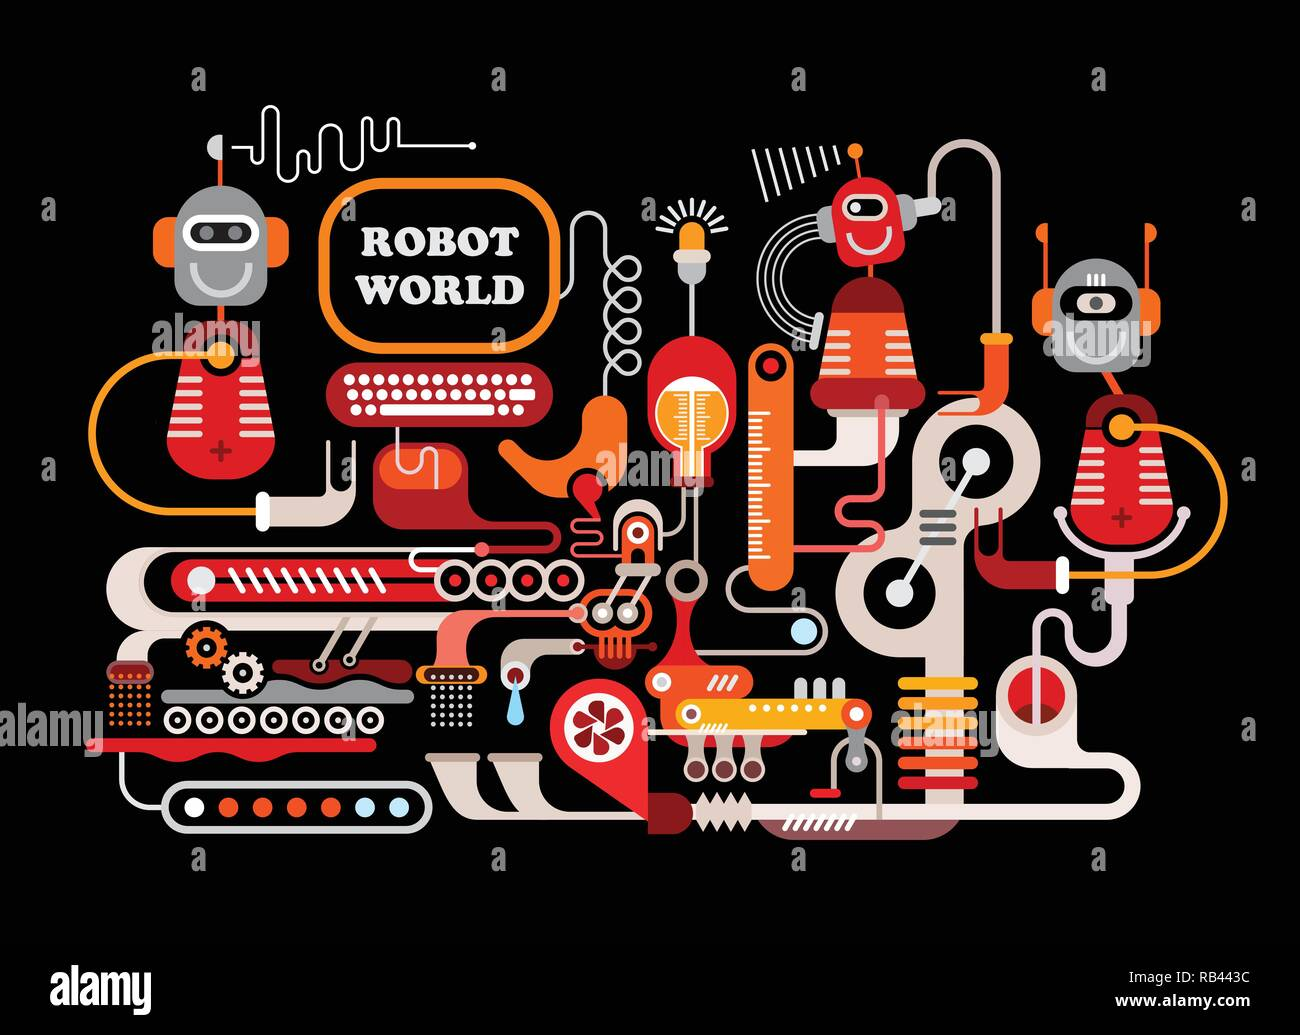 Robot World. Manufacturing robots vector illustration isolated on a black background.  Welcome to the future, were funny robots will do all the boring Stock Vector